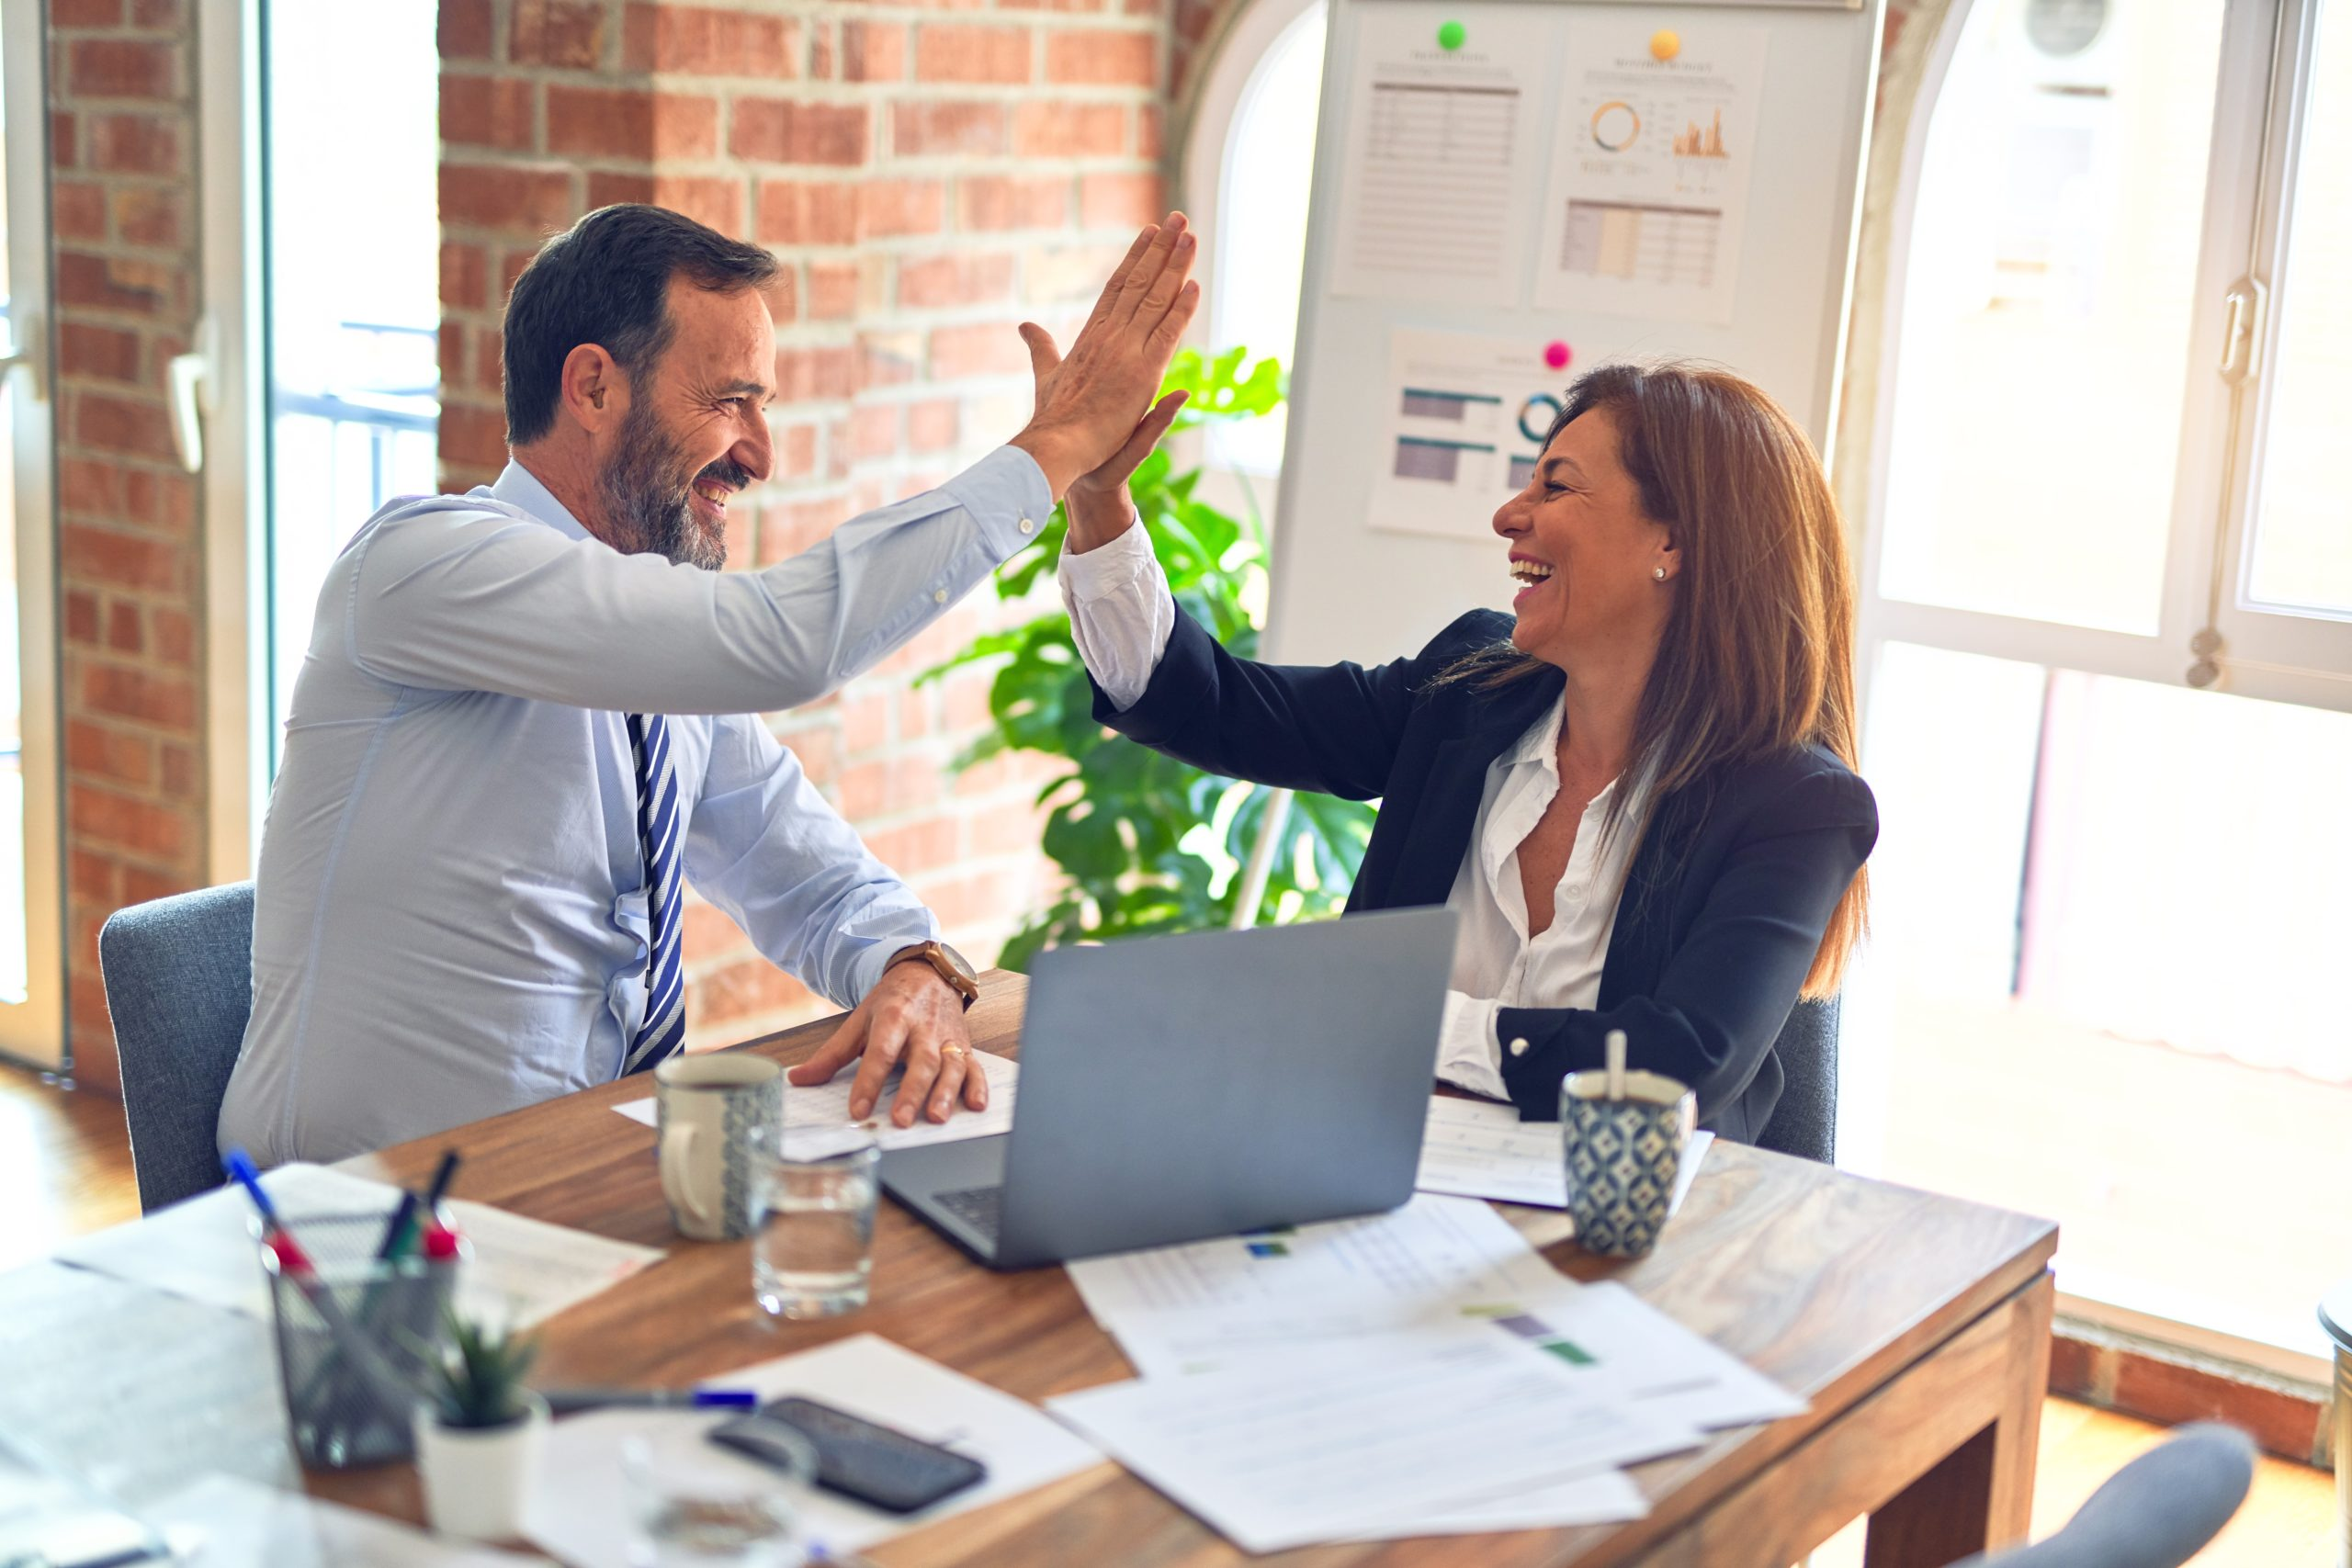 Two colleagues sharing a high-five after a personal meeting